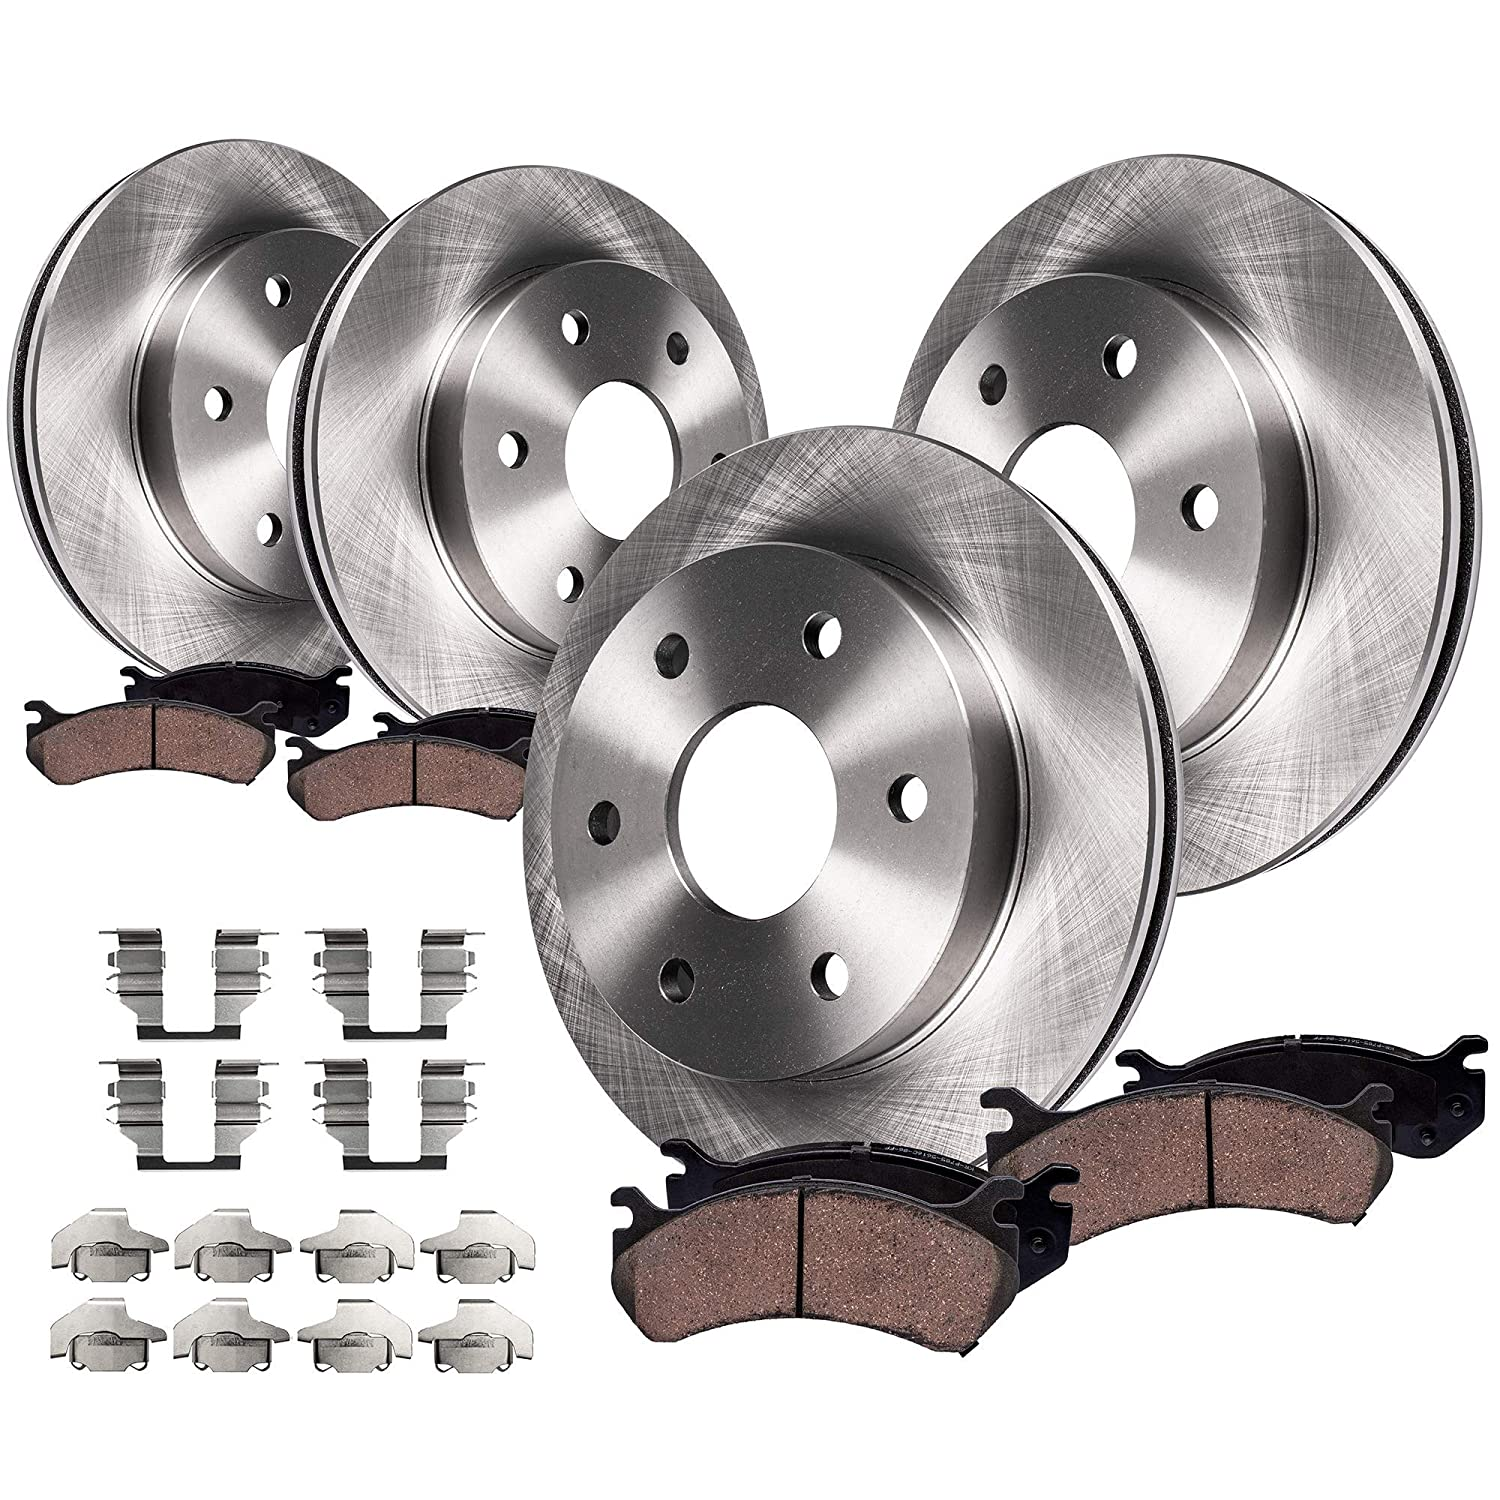 Chevy Tahoe//Yukon - Dual Piston Rear Calipers Detroit Axle 330mm 6-Lug FRONT /& REAR Brake Rotors /& Ceramic Brake Pads w//Hardware fits GMC Sierra /& Silverado 1500 -